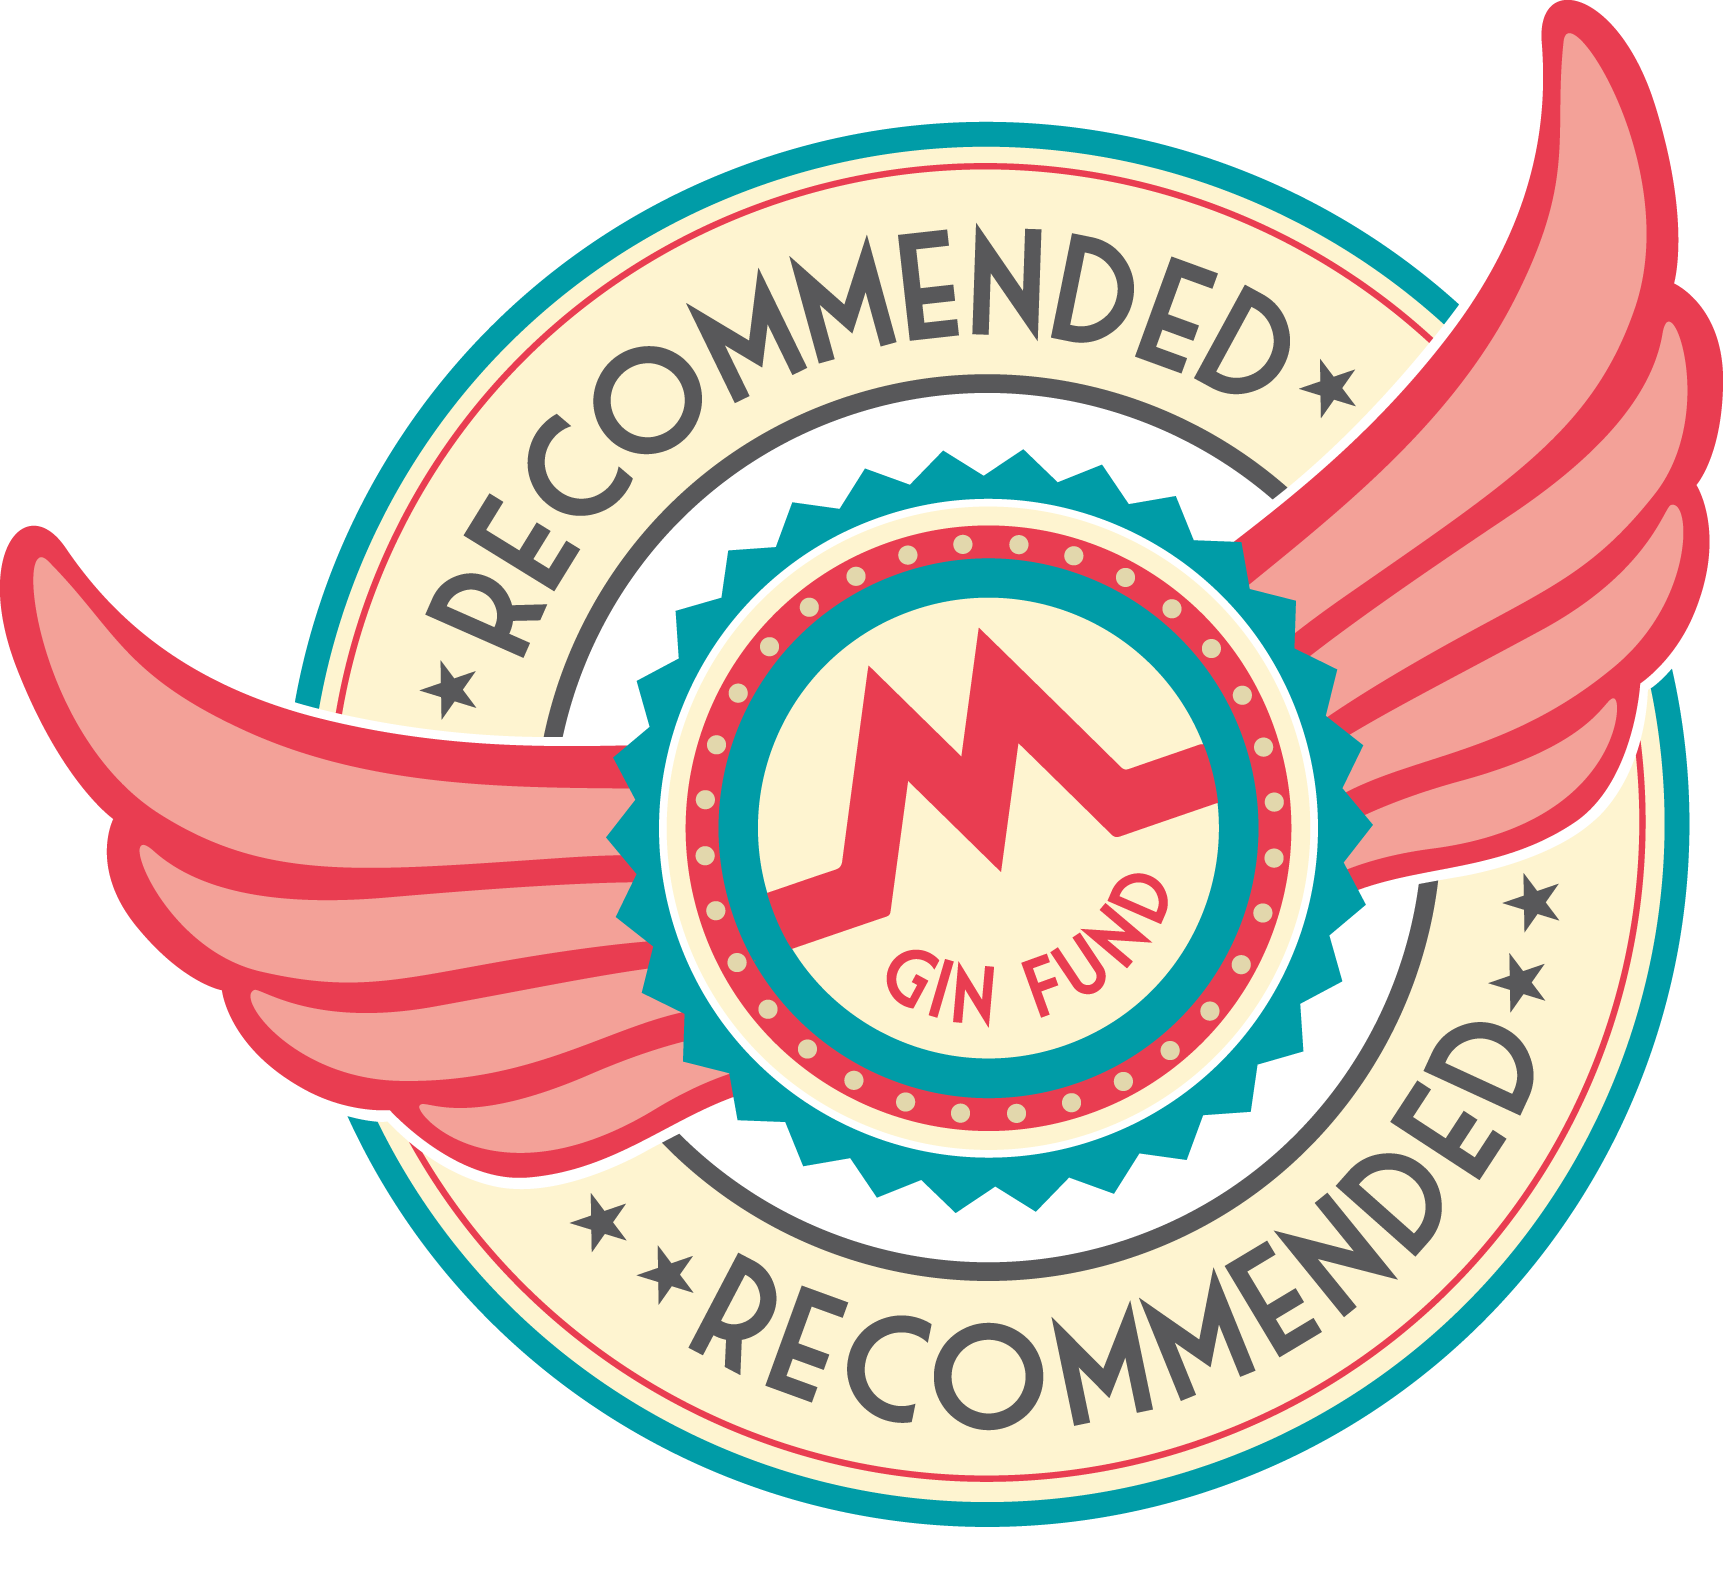 MGF recommended_FINAL.png